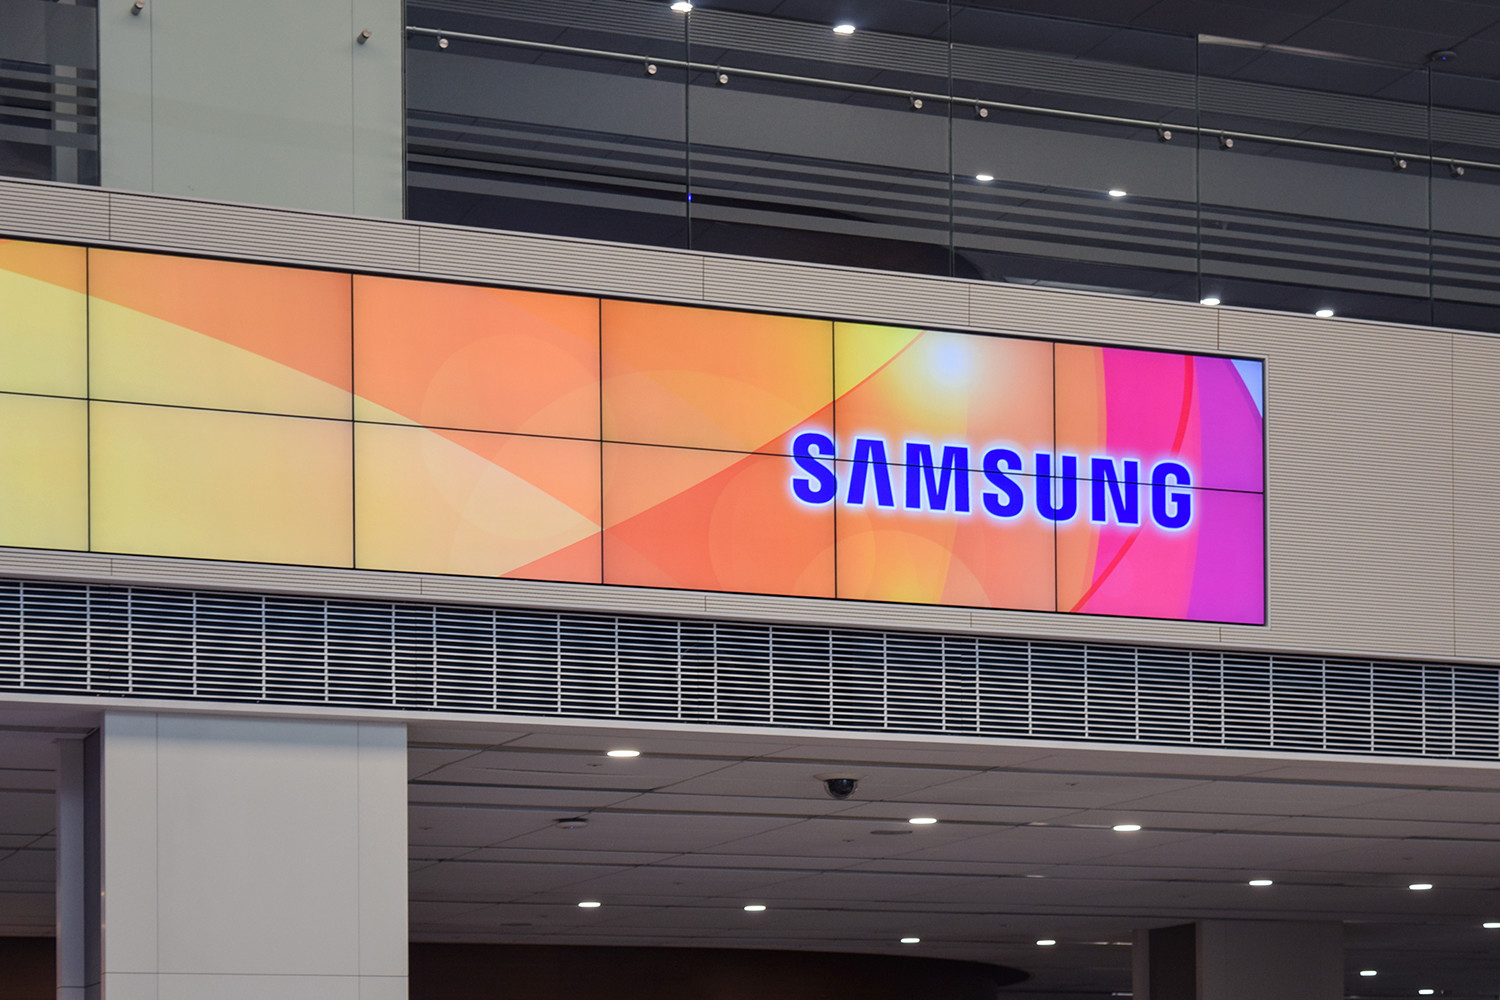 Samsung's Tizen scores high on vulnerabilities, says researcher